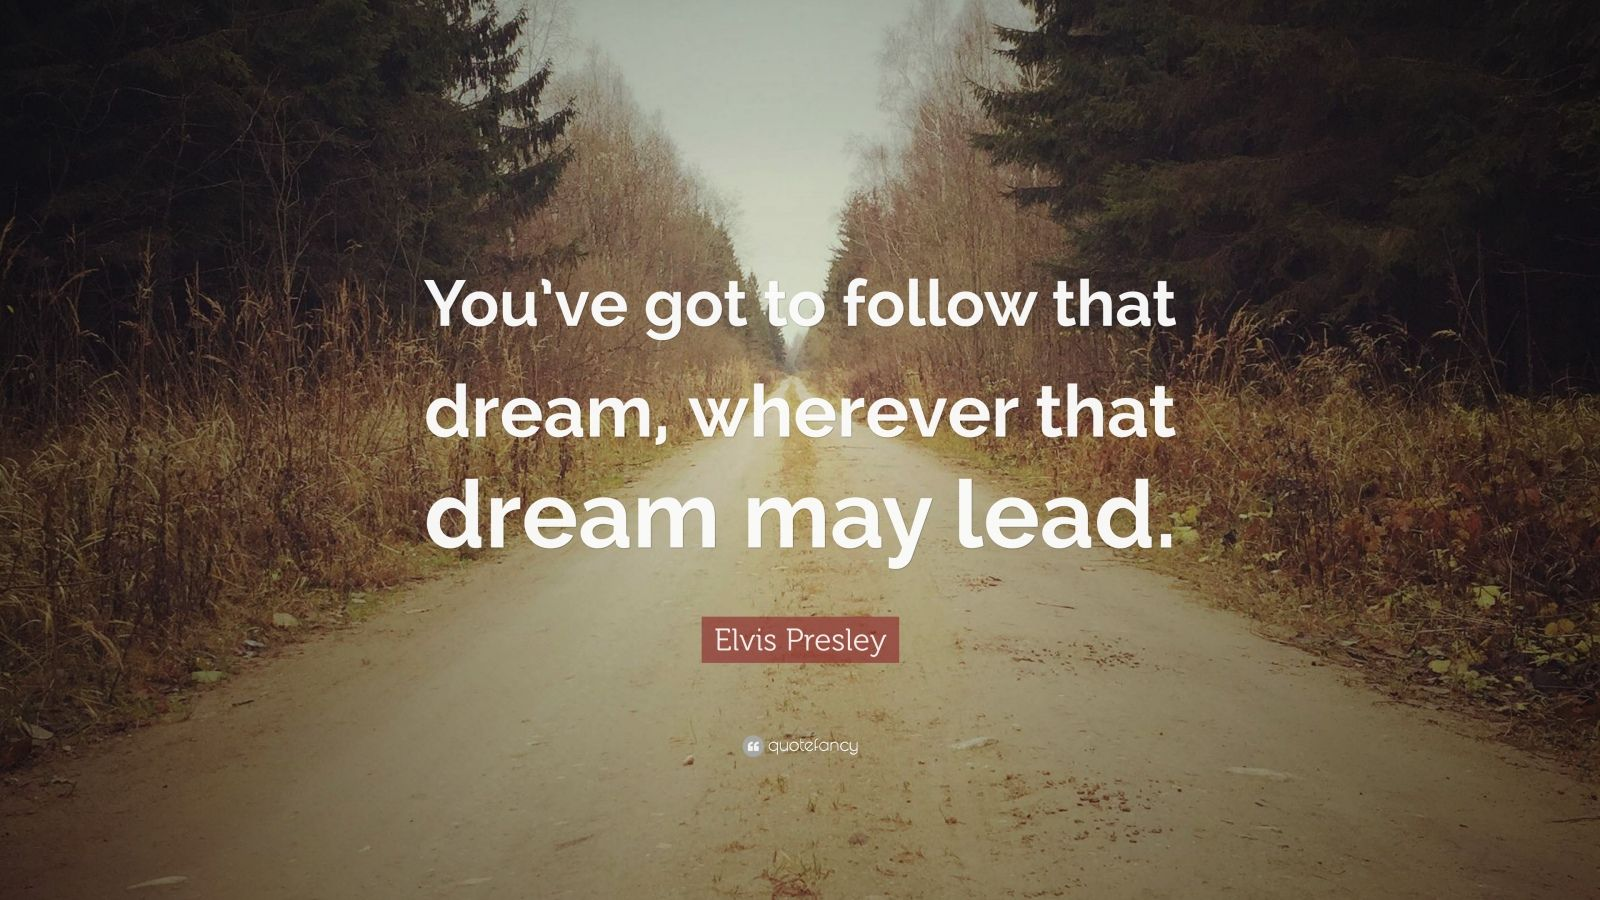 """Elvis Presley Quote: """"You've got to follow that dream, wherever that dream may lead."""""""